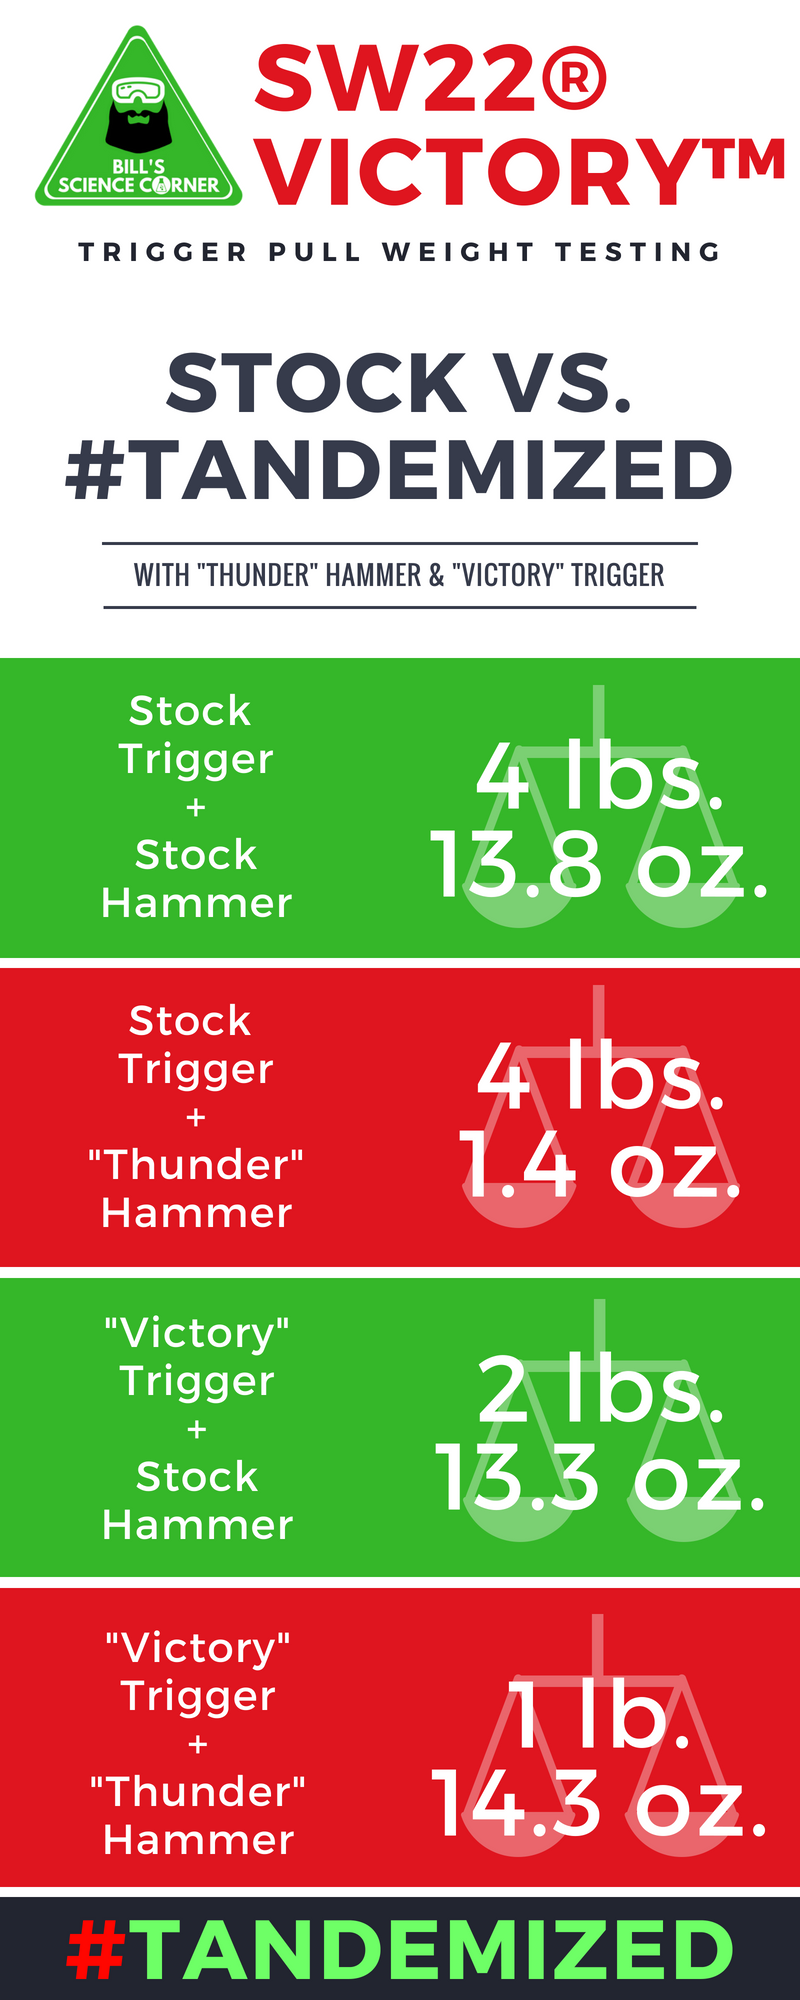 SW22VICTORY_TRIGGERPULL_INFOGRAPHIC (2)